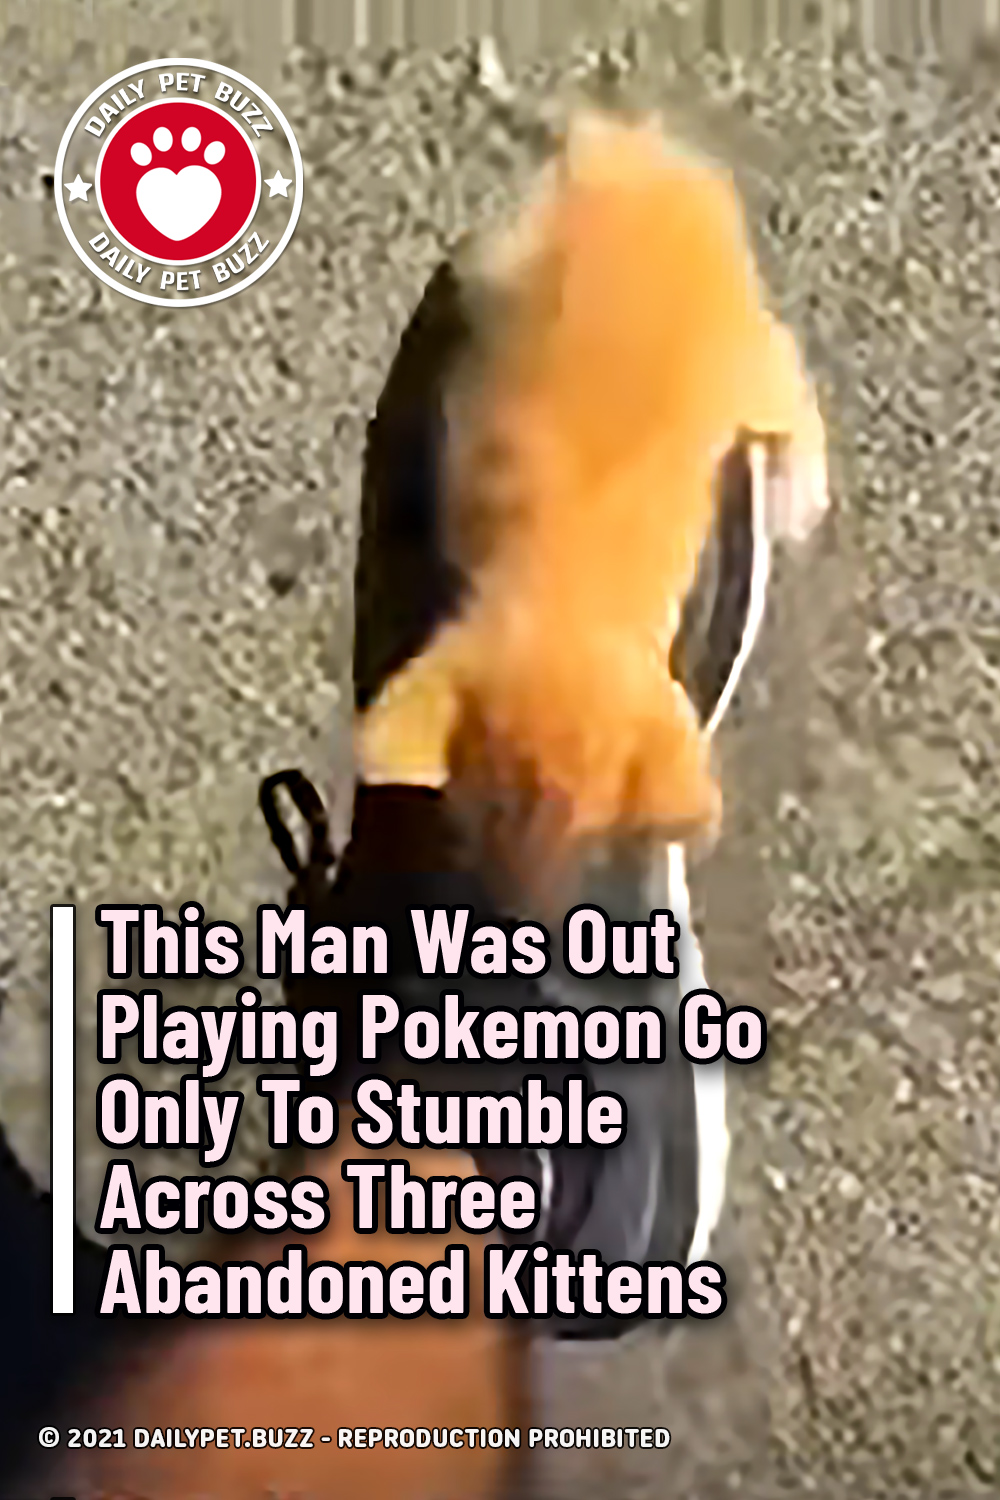 This Man Was Out Playing Pokemon Go Only To Stumble Across Three Abandoned Kittens